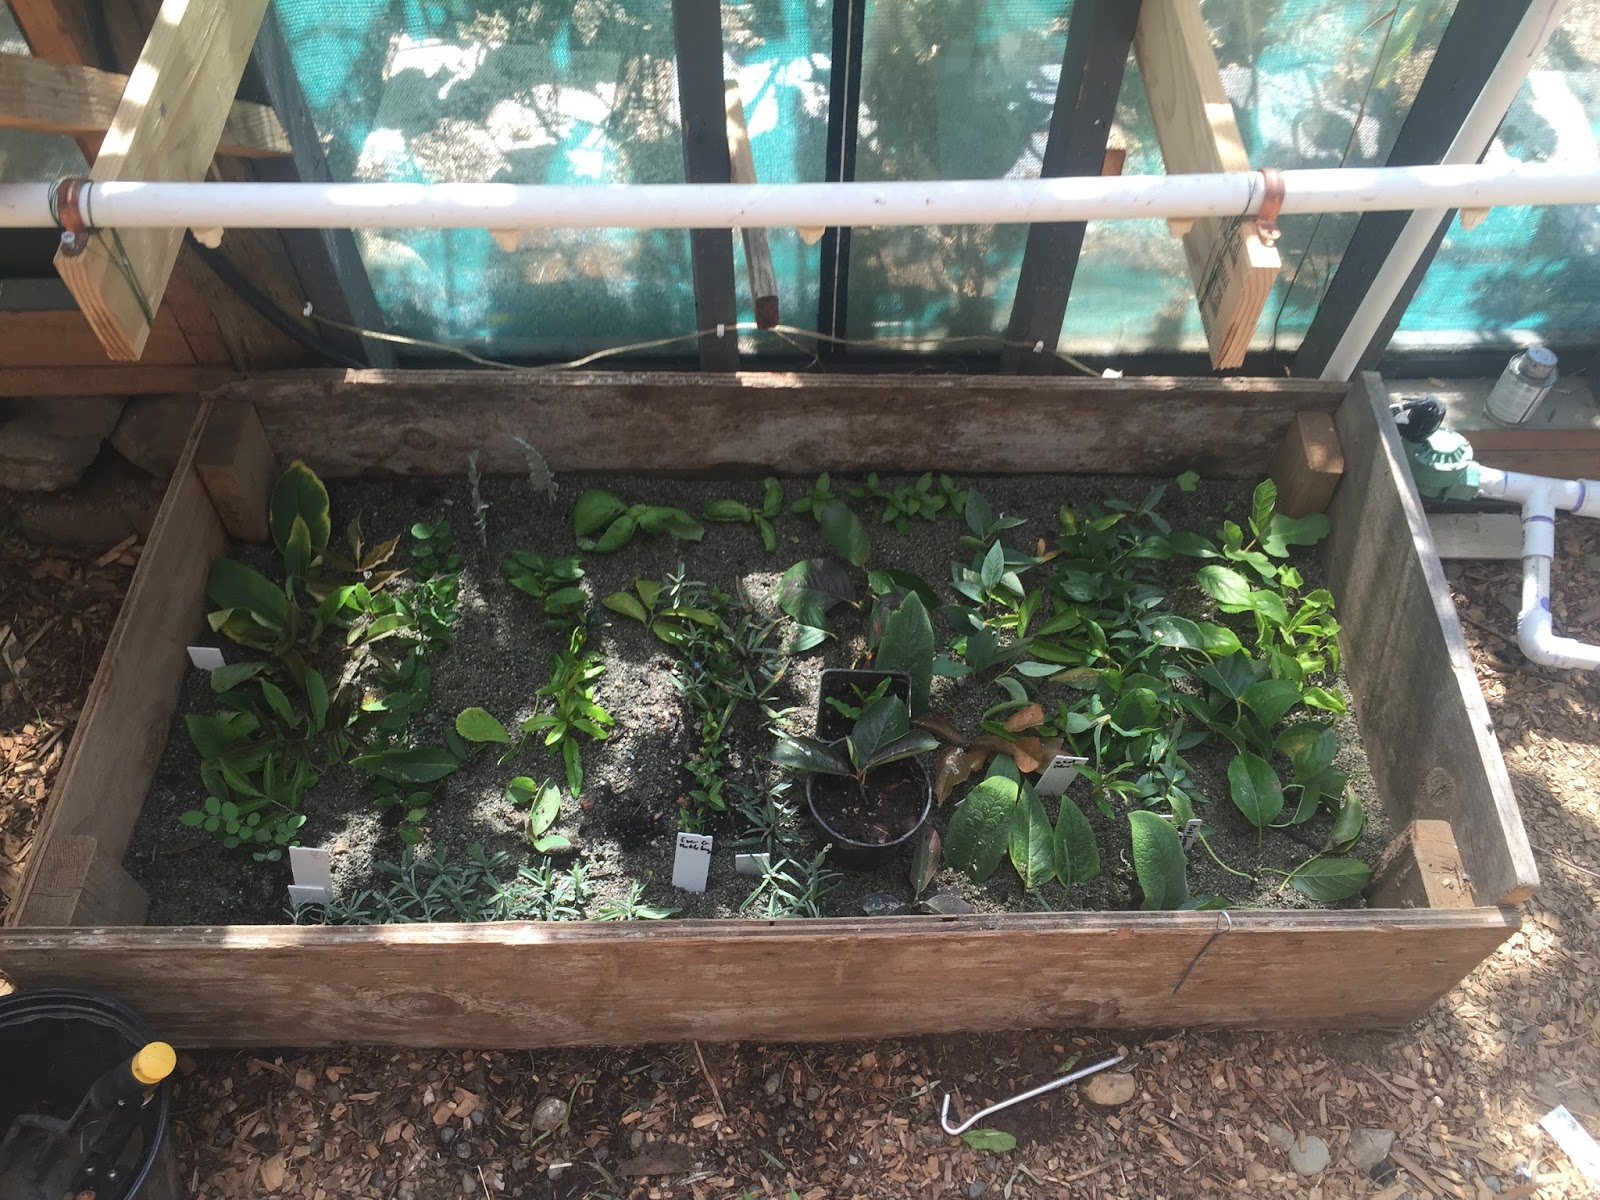 adventures with a tubie: diy plant propagation misting system using